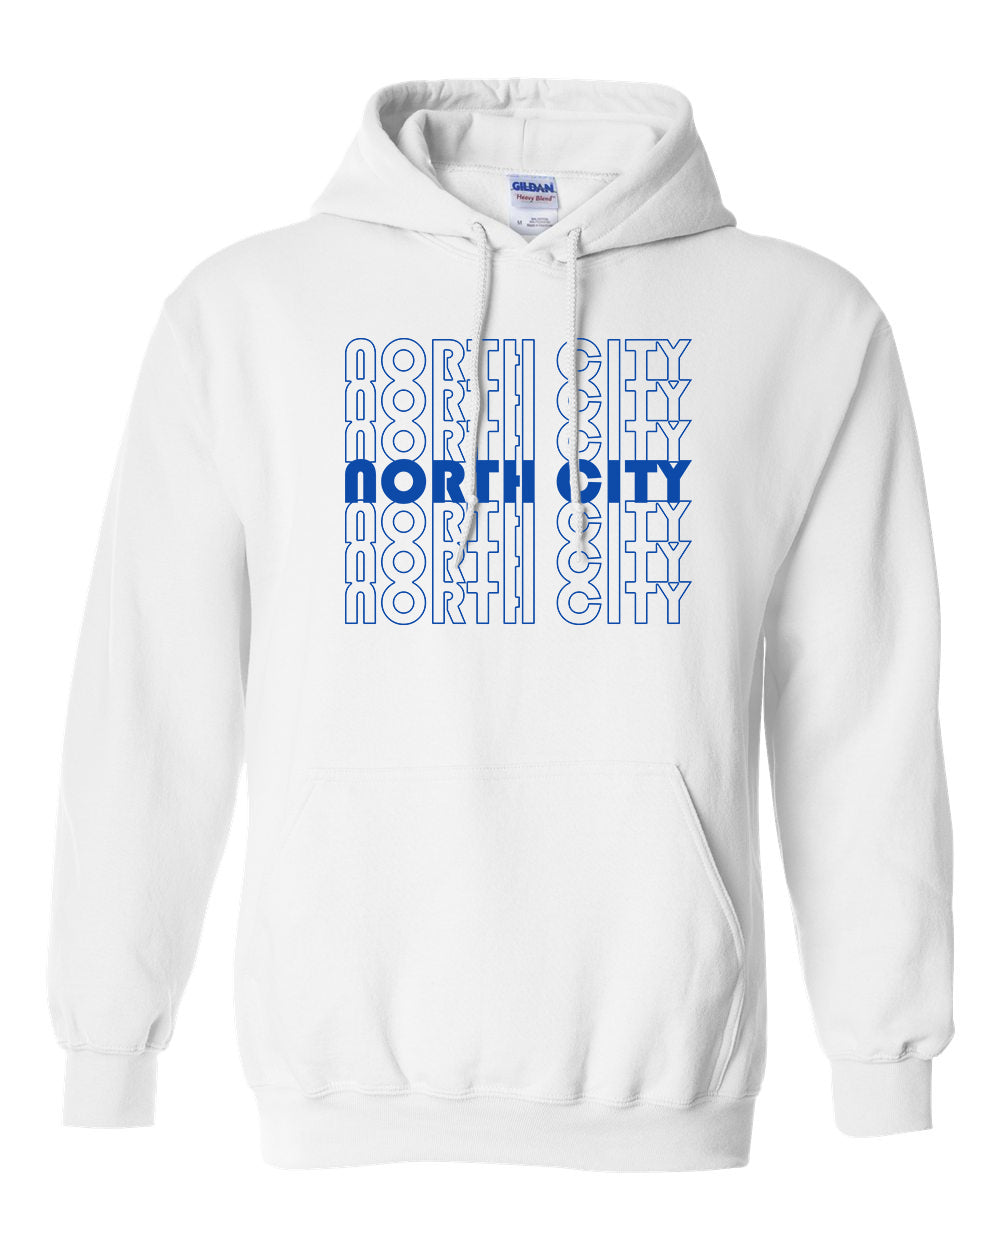 North City - Hoody